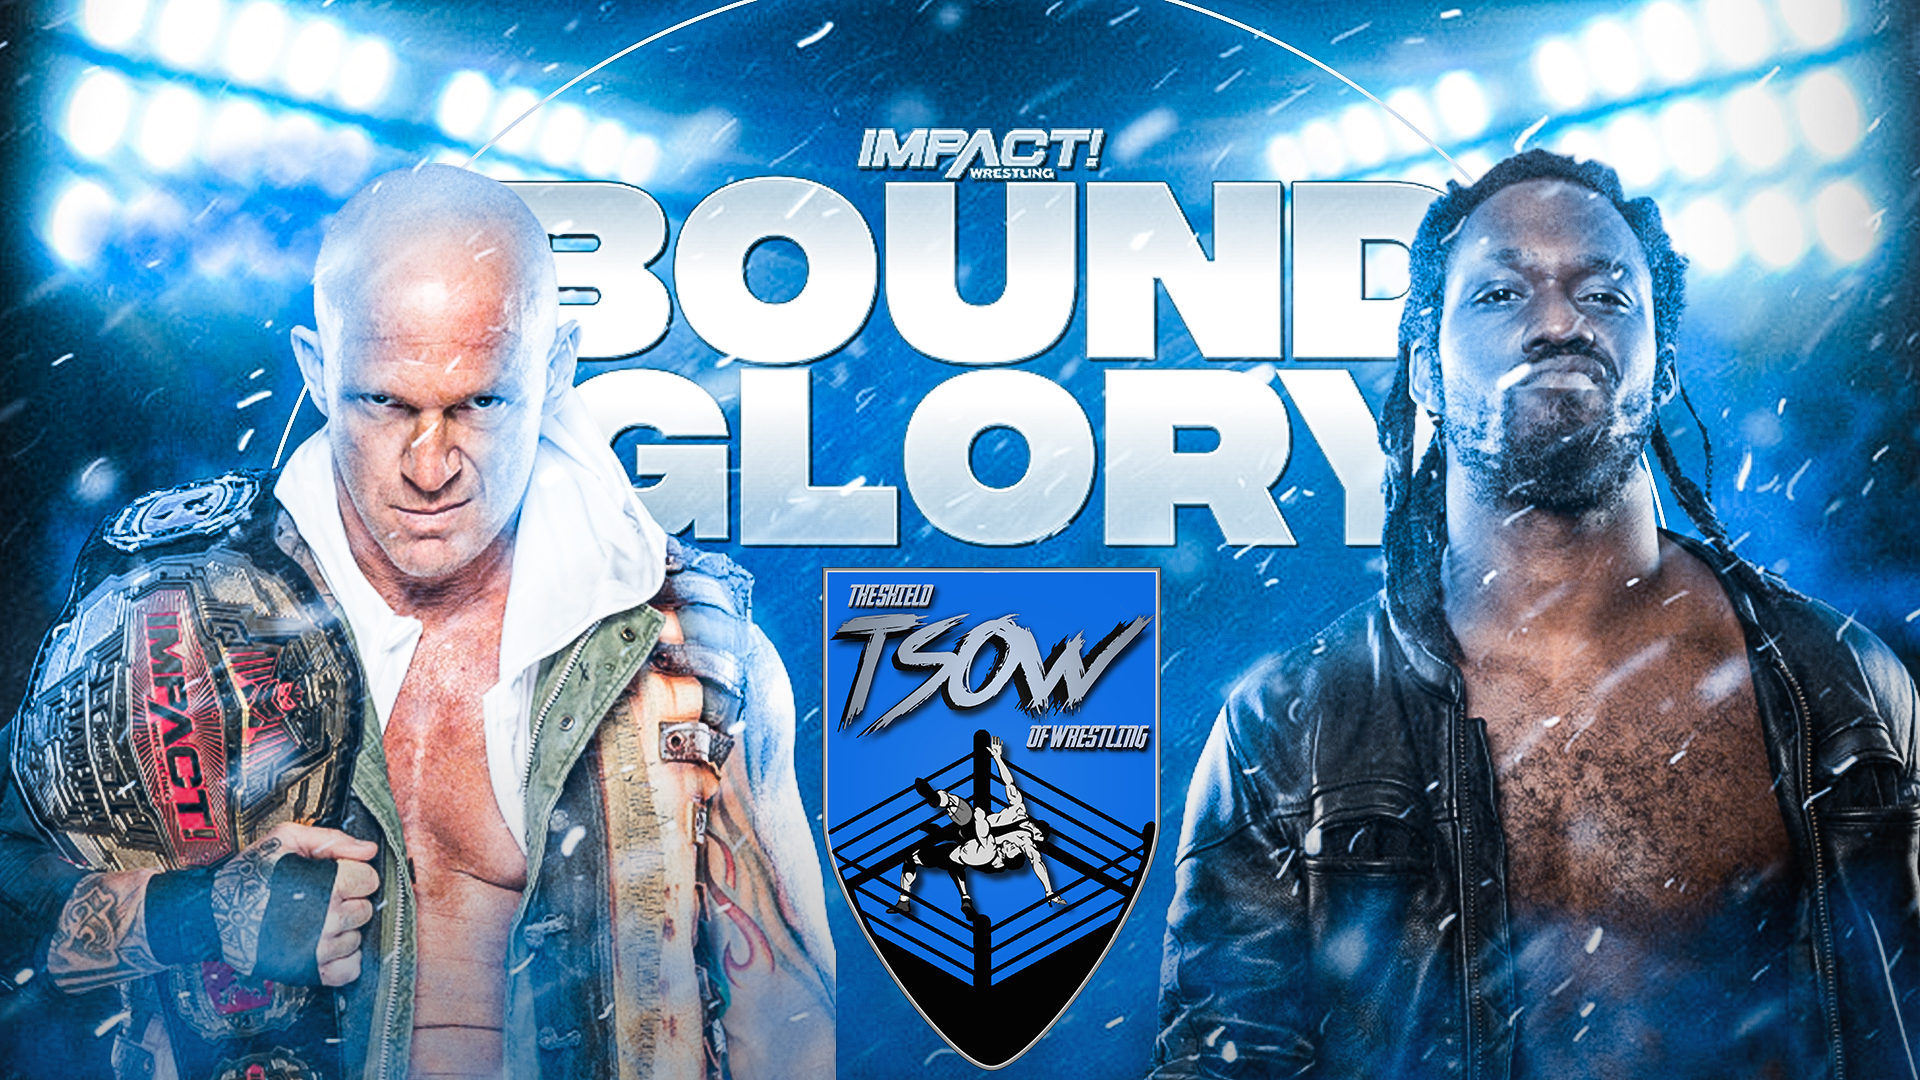 Bound for Glory 2020